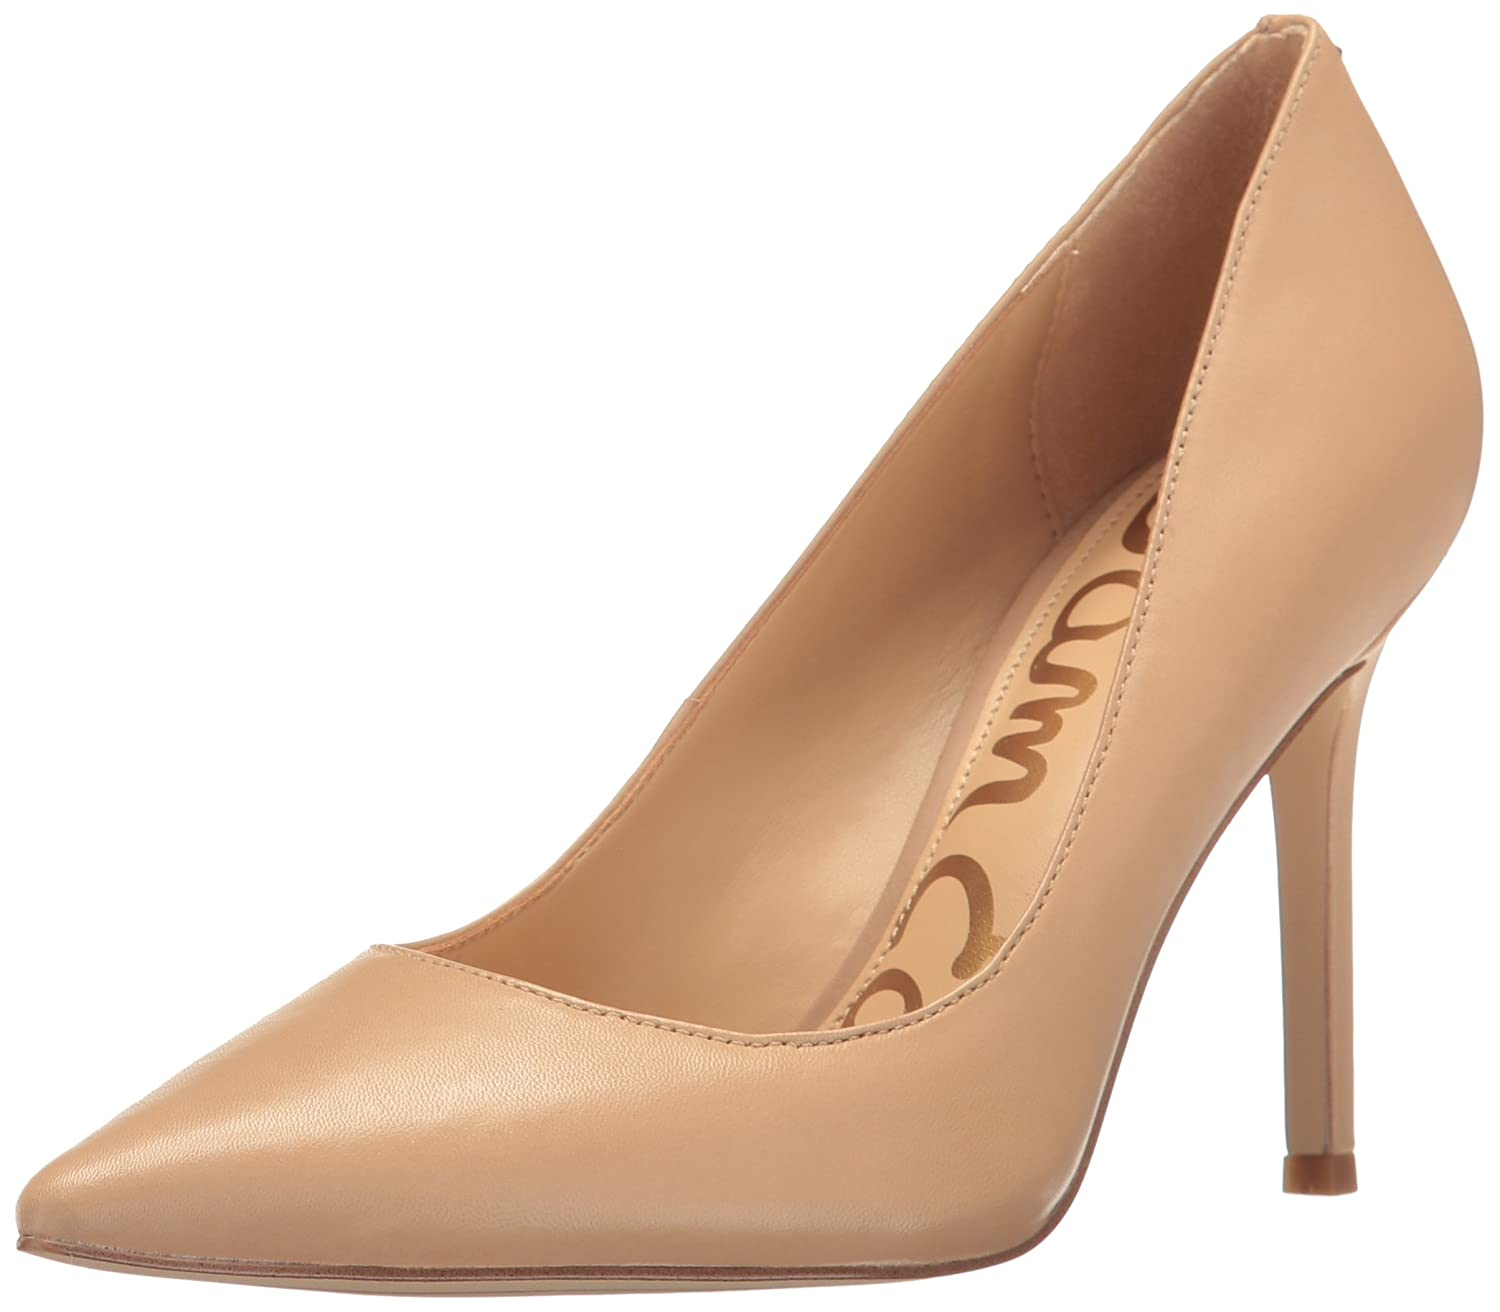 Sam Edelman Women's Hazel Pump B01K0Y1W0M 10 B(M) US|Classic Nude Leather